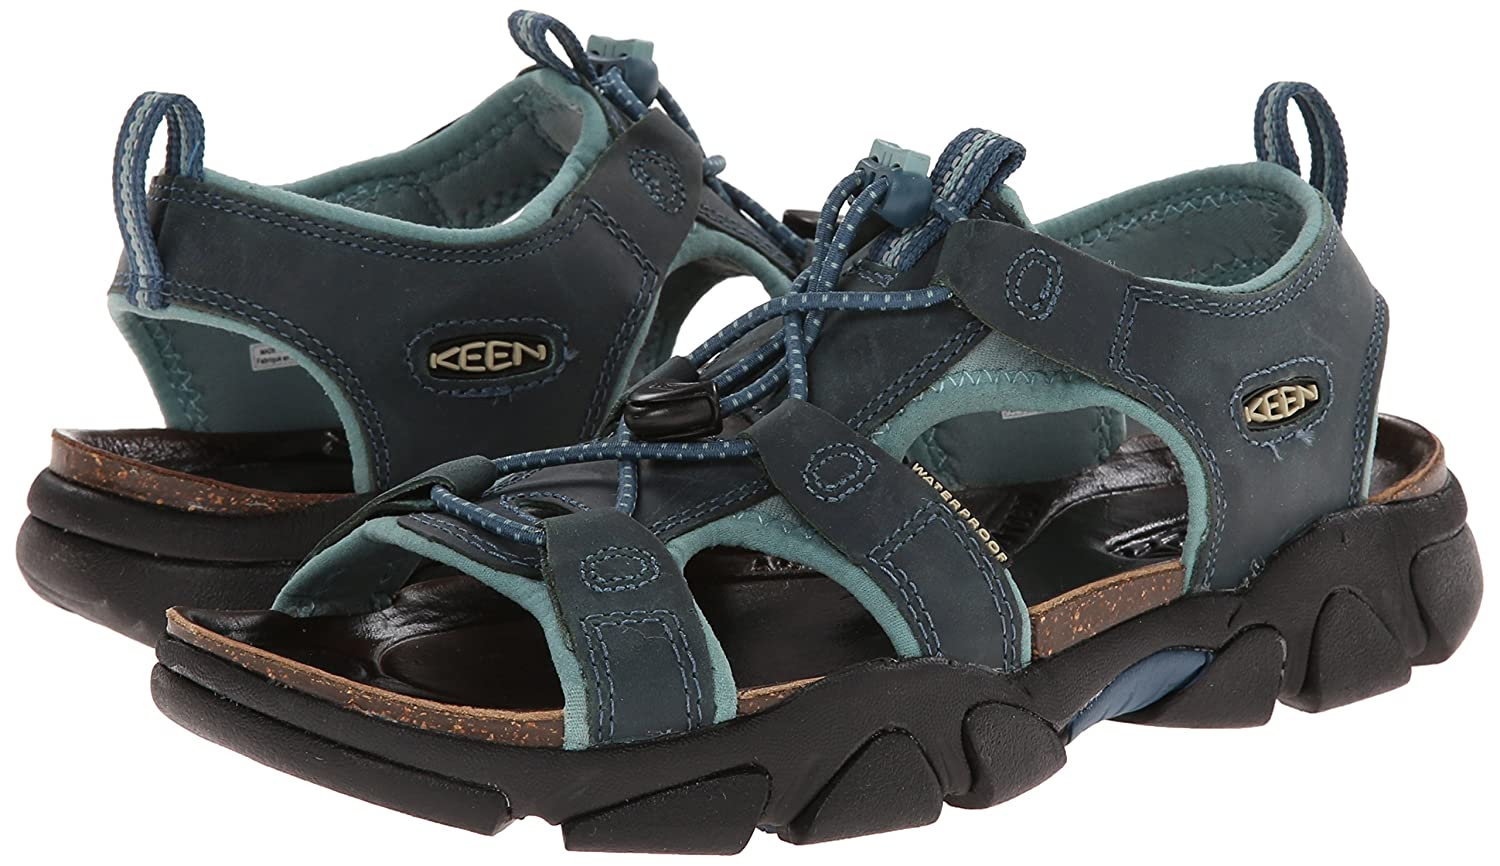 KEEN Women's 5 Sarasota Sandal B00LG9HNDG 5 Women's B(M) US|Indian Teal 1c1acd